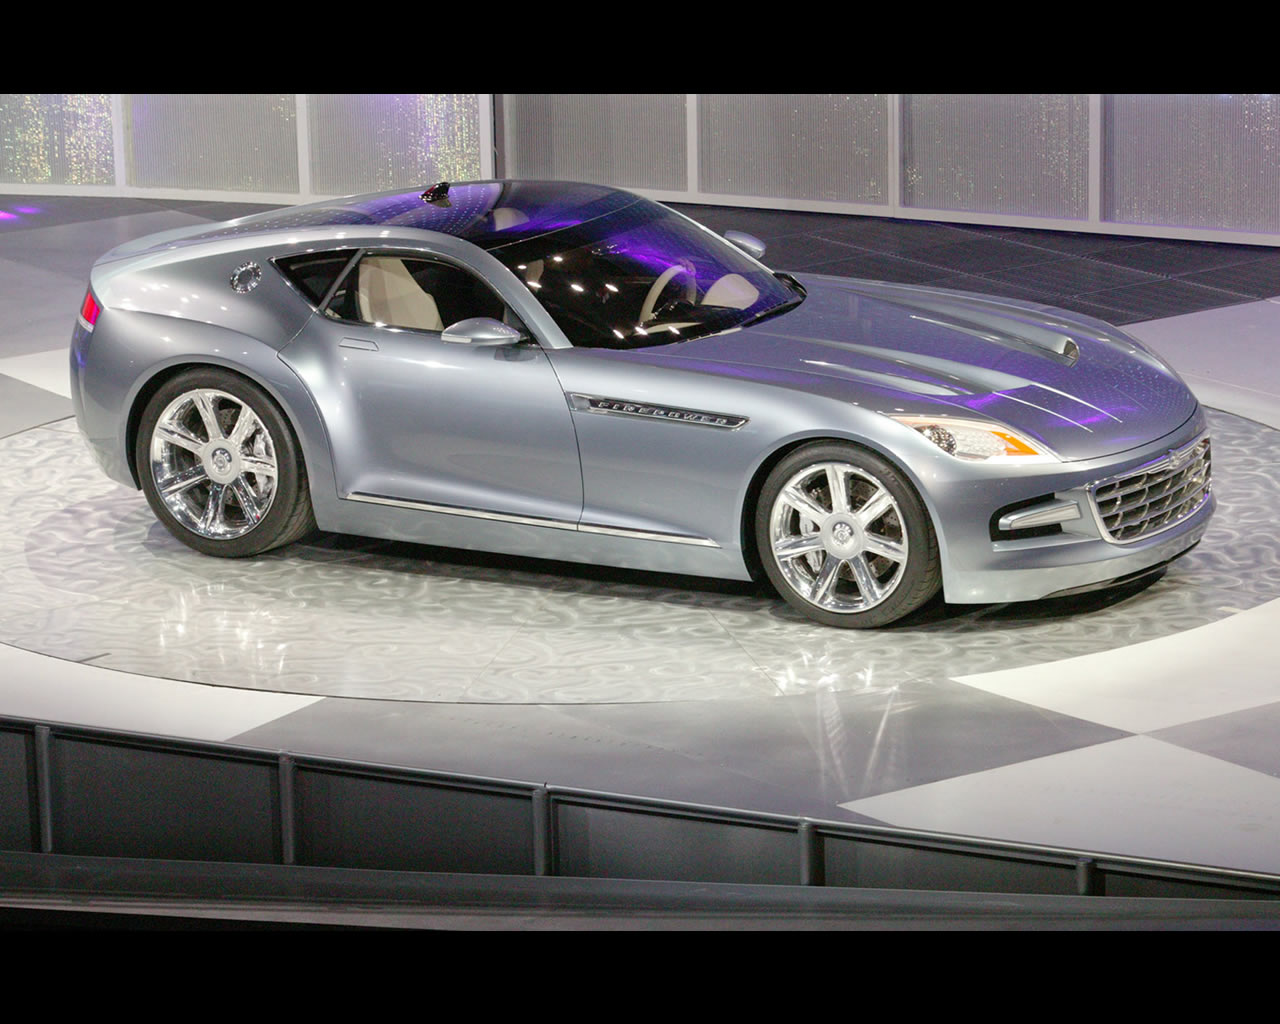 2019 Chrysler Crossfire Concept photo - 2